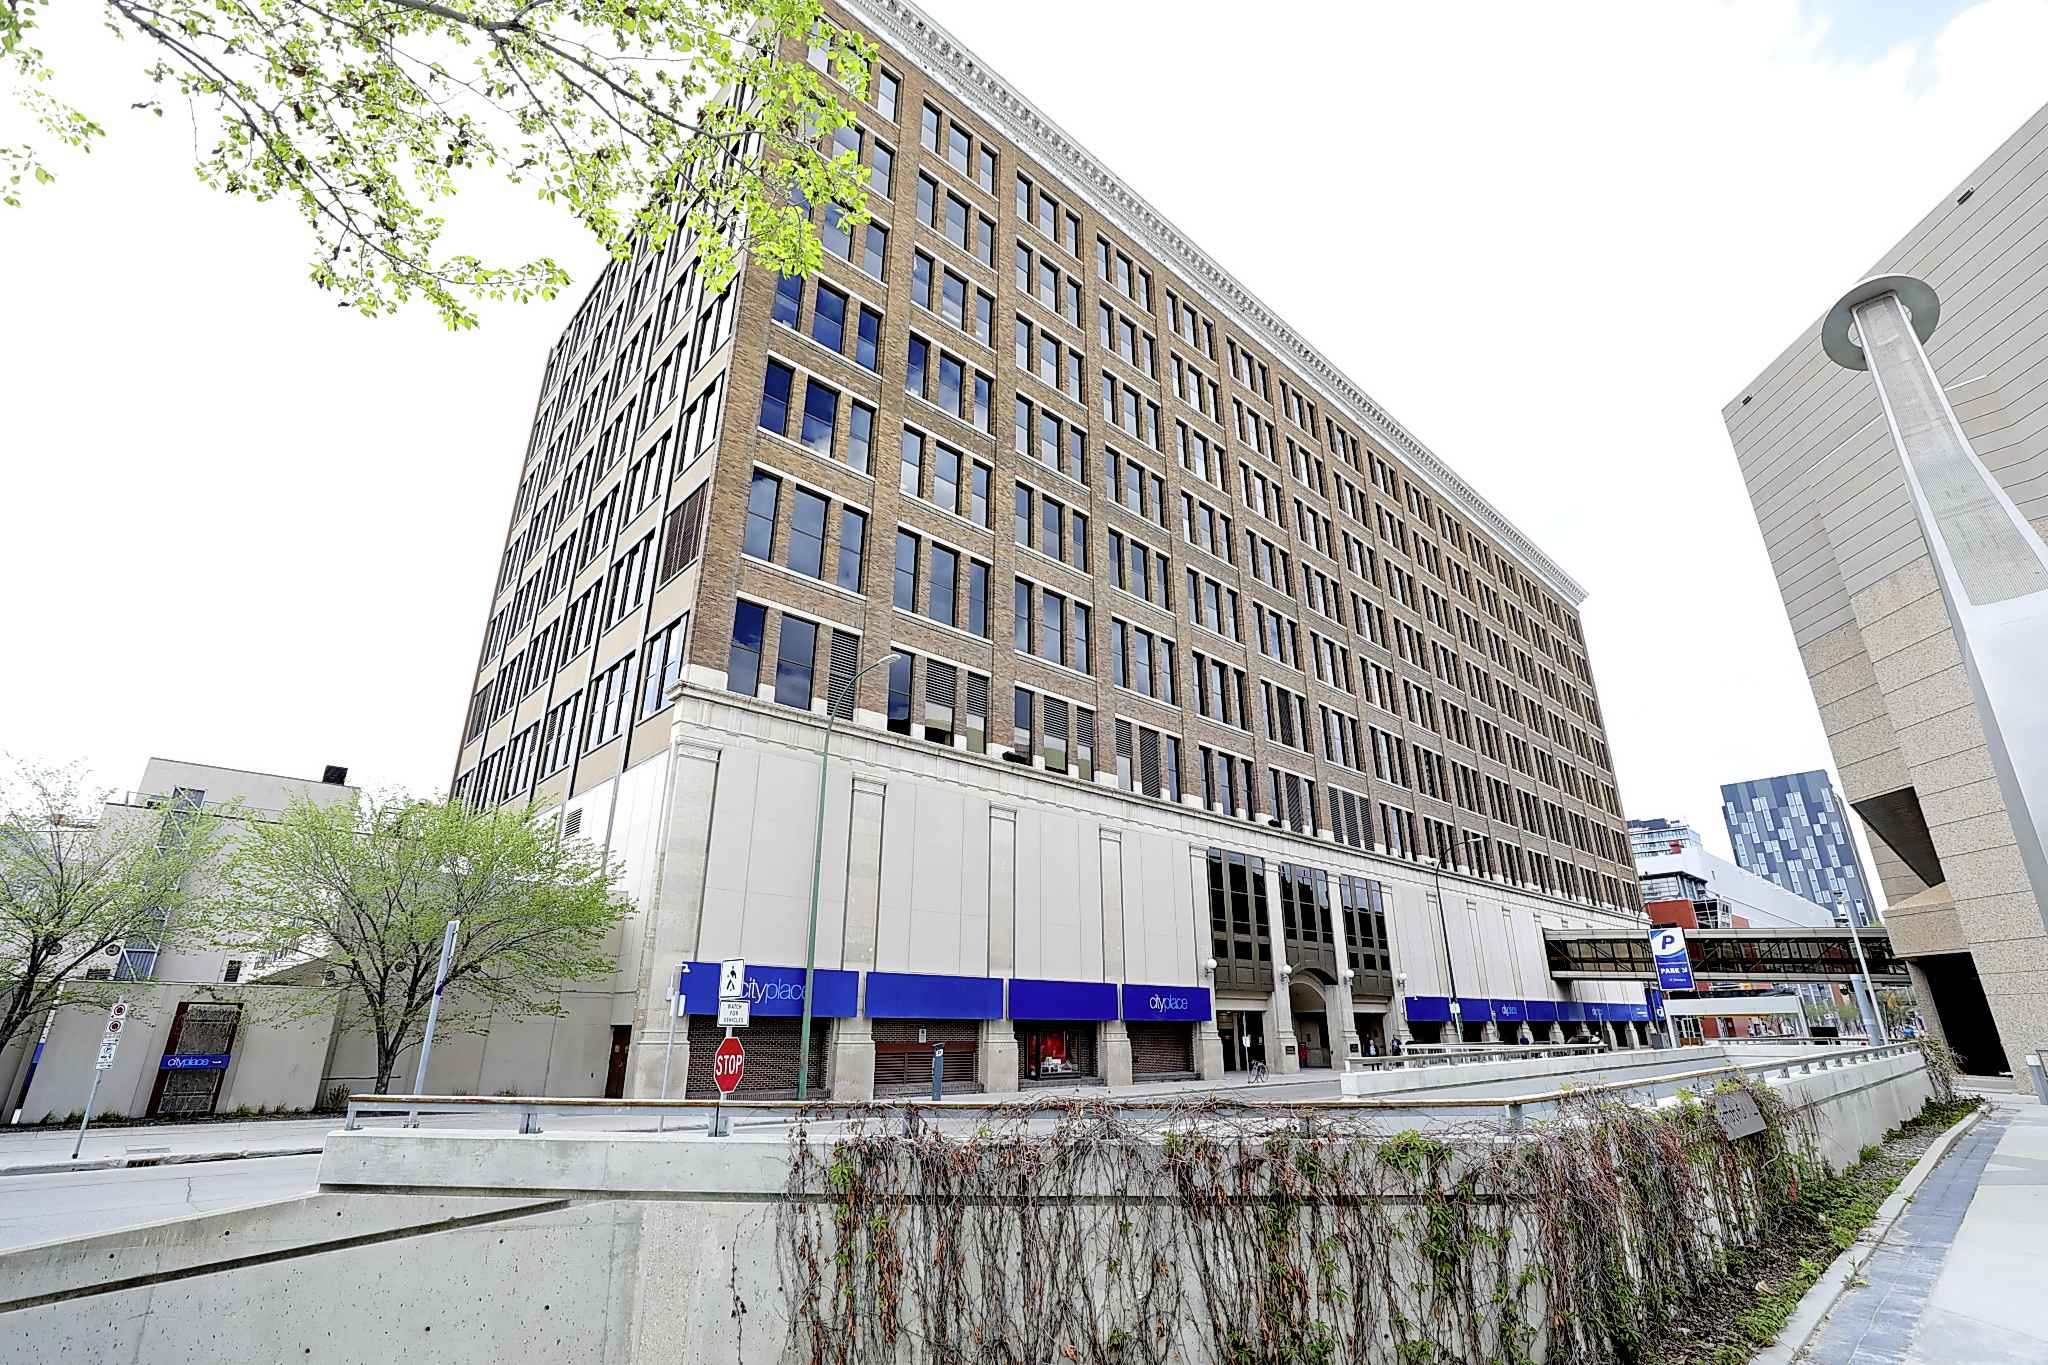 RUTH BONNEVILLE / WINNIPEG FREE PRESS  An attempt to designate the iconic Eaton's mail order building as a historical resource by the City of Winnipeg has faced pushback from owner Manitoba Public Insurance.